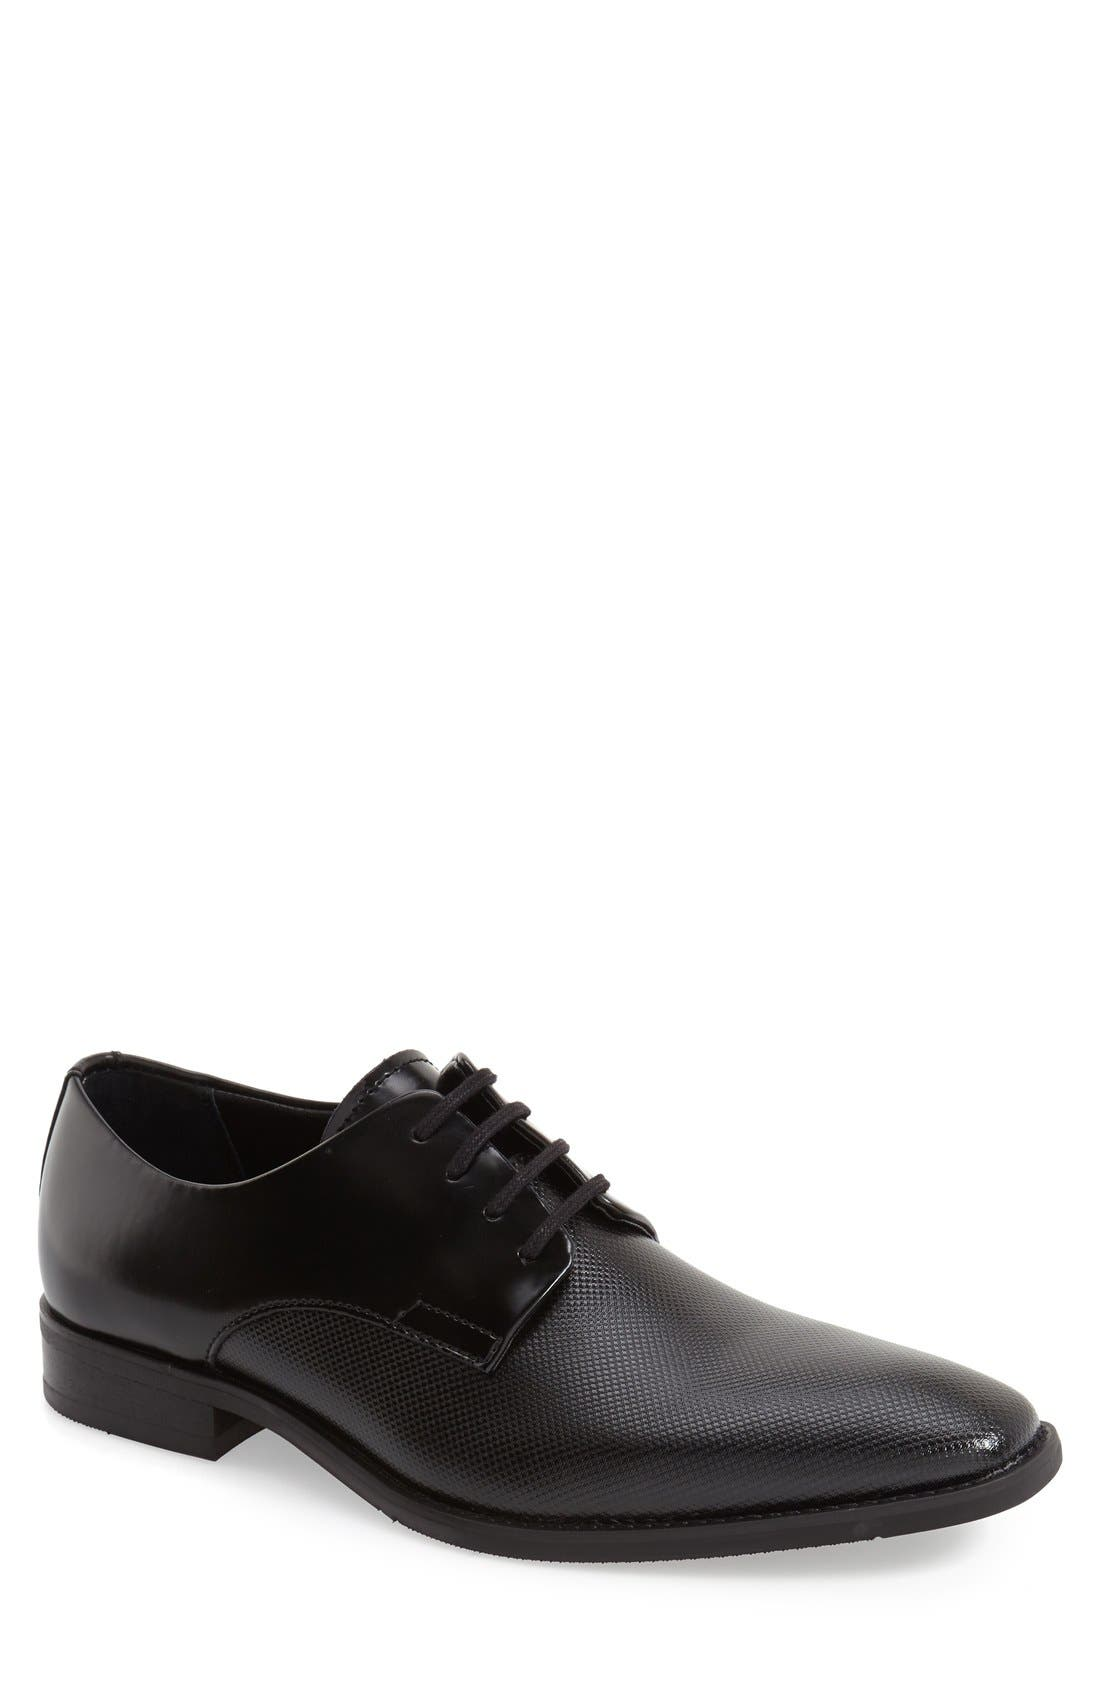 CALVIN KLEIN, 'Ramses' Plain Toe Derby, Main thumbnail 1, color, BLACK LEATHER